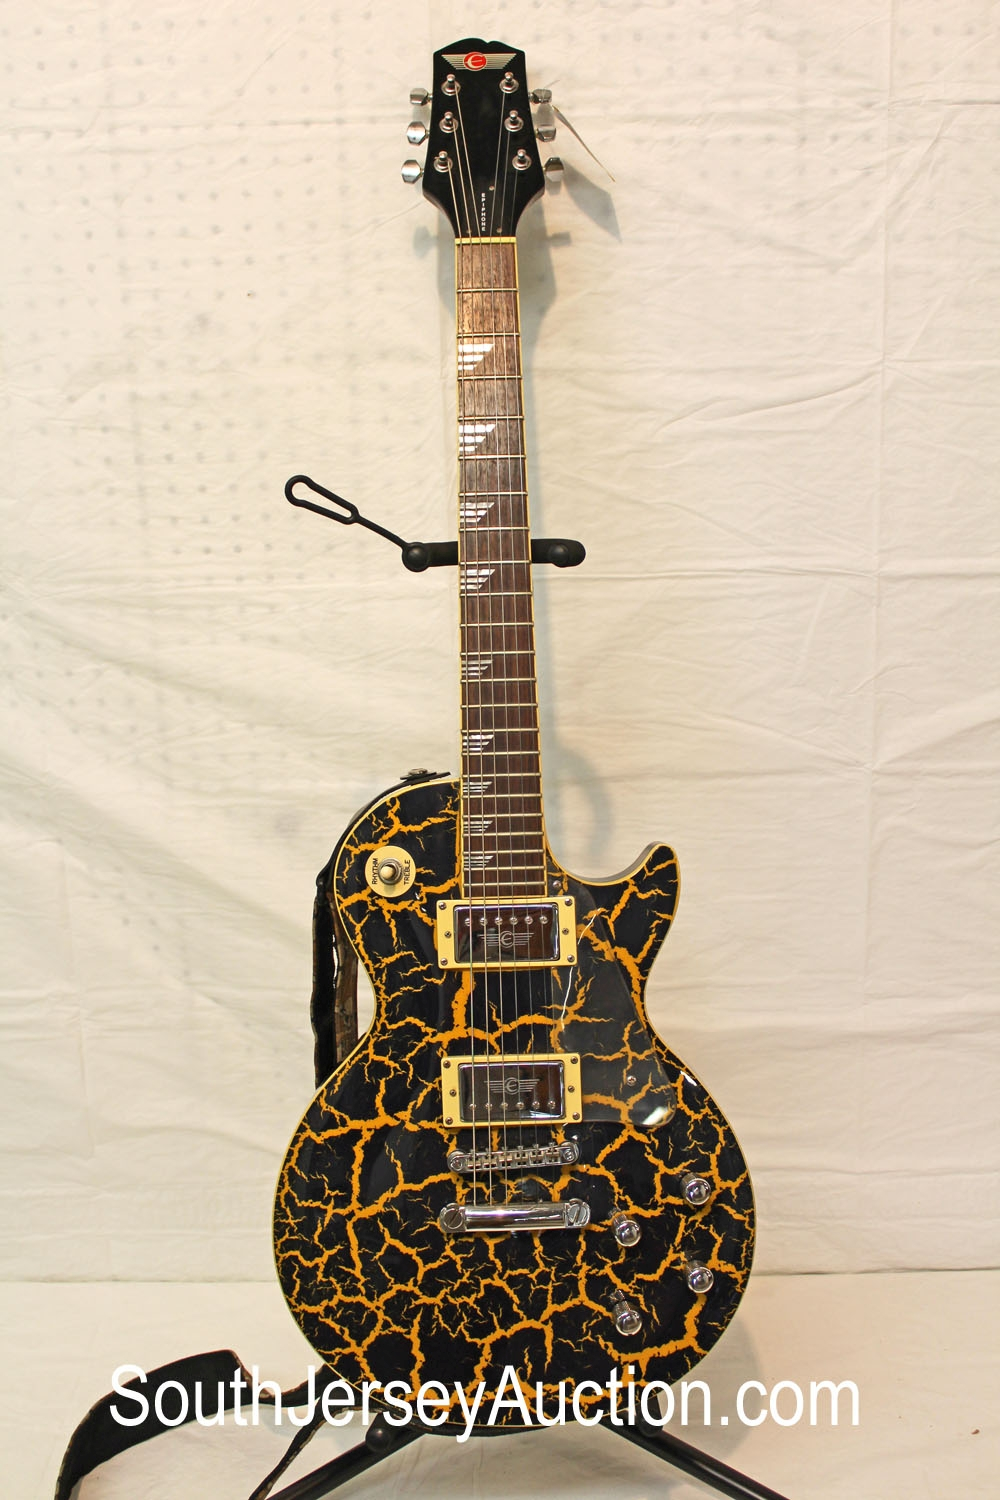 2001 Epiphone Nuclear Extreme Crackle Finish, Custom Shop Limited Edition, made in Korea, shark inlays, s/n 0106568,  in good condition